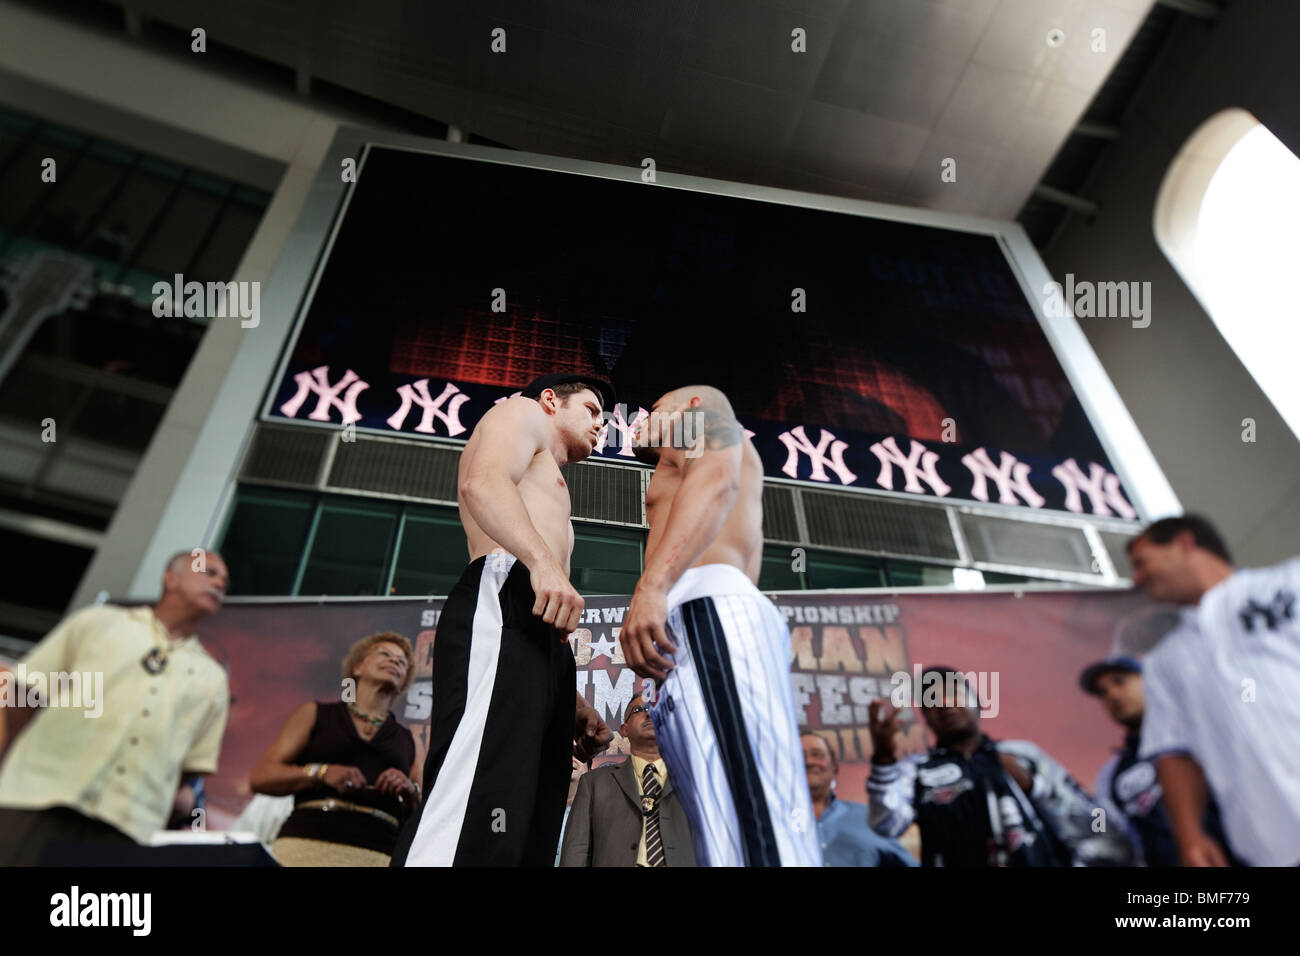 Boxers Miguel Cotto (right with tattoo) vs Yuri Foreman (left wearing cap) weigh-in at Yankee Stadium - Stock Image